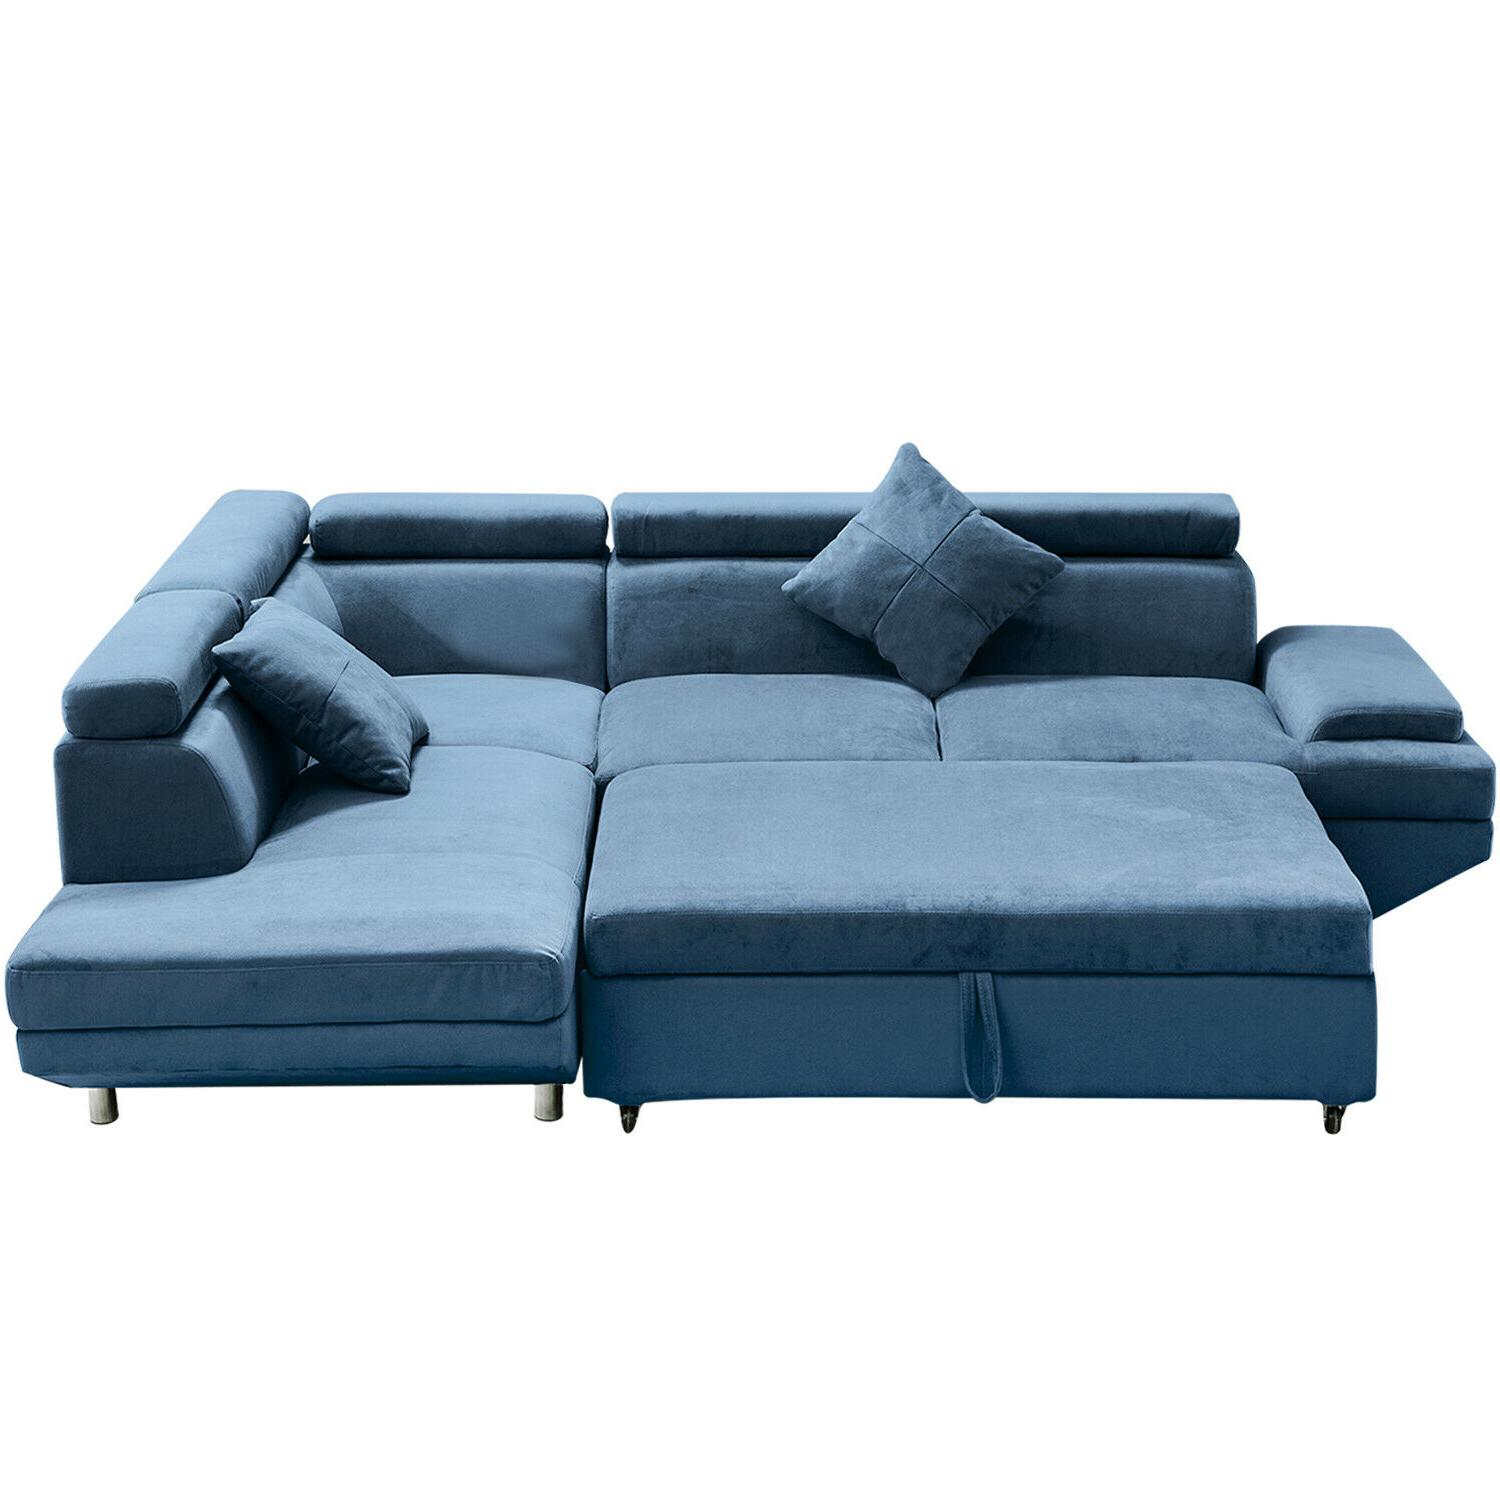 Sofa Bed Sectional Futon